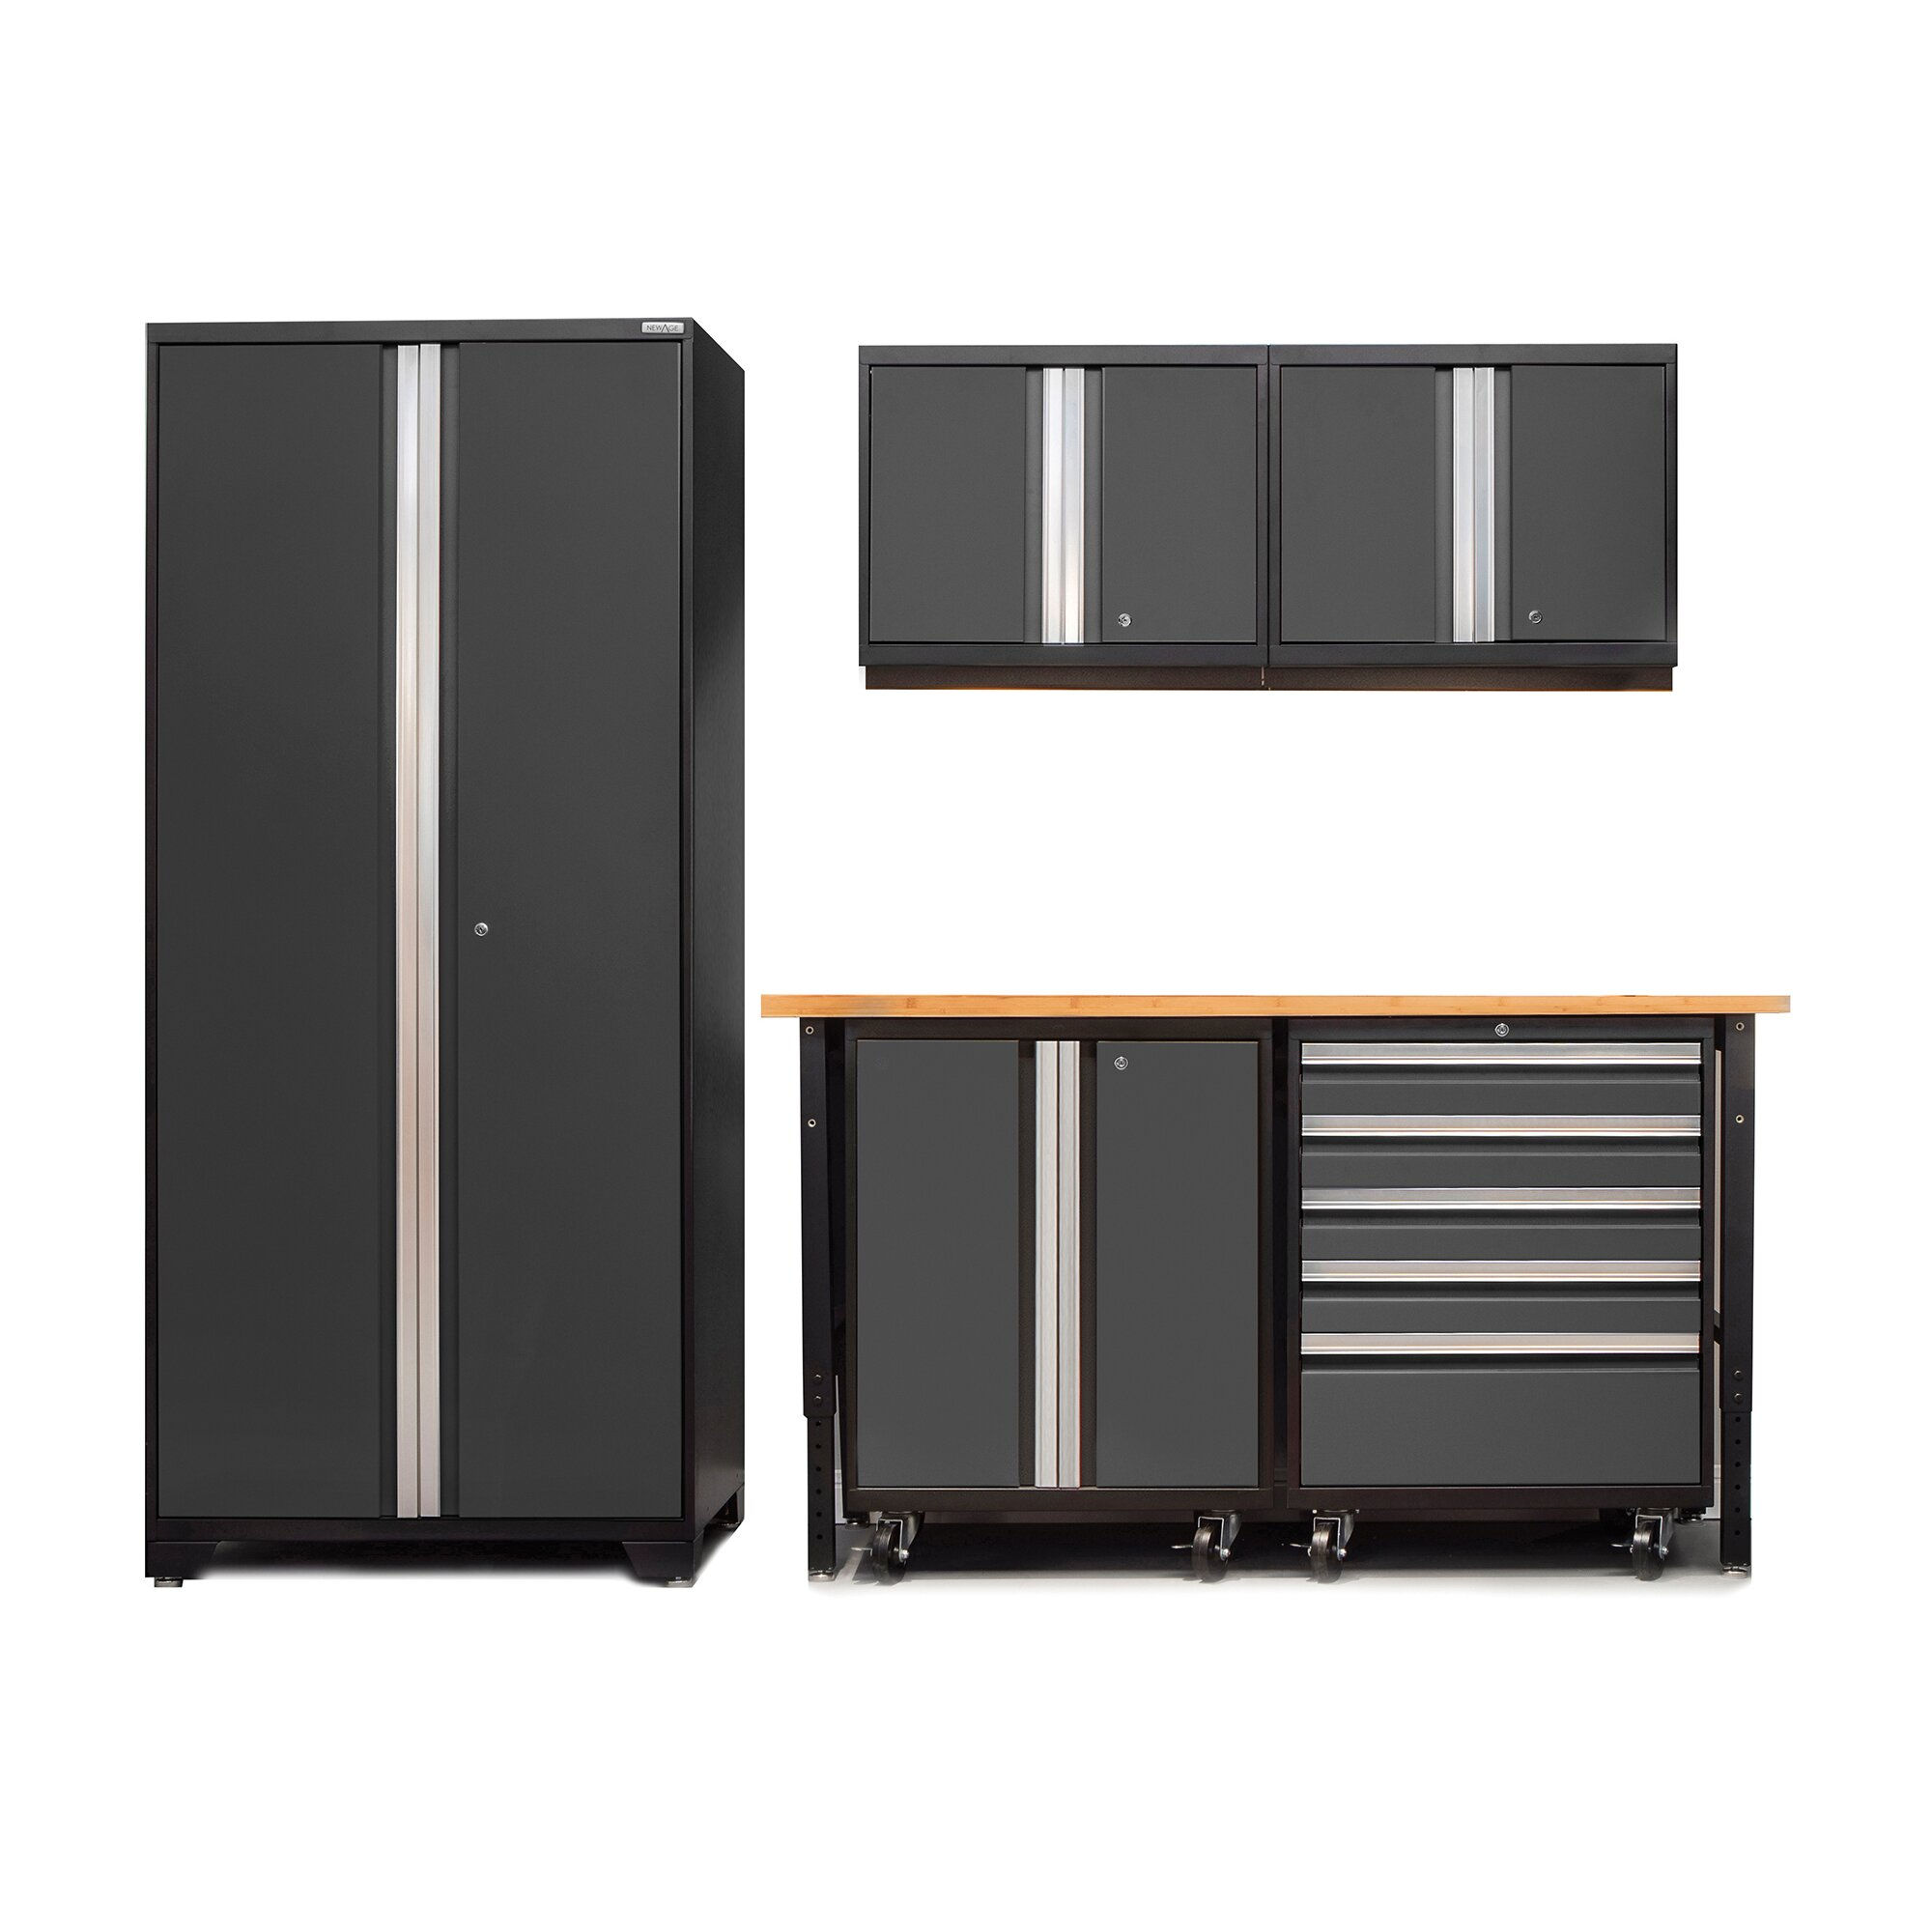 Newage products pro 3 0 series 6 piece garage storage for Garage cabinets